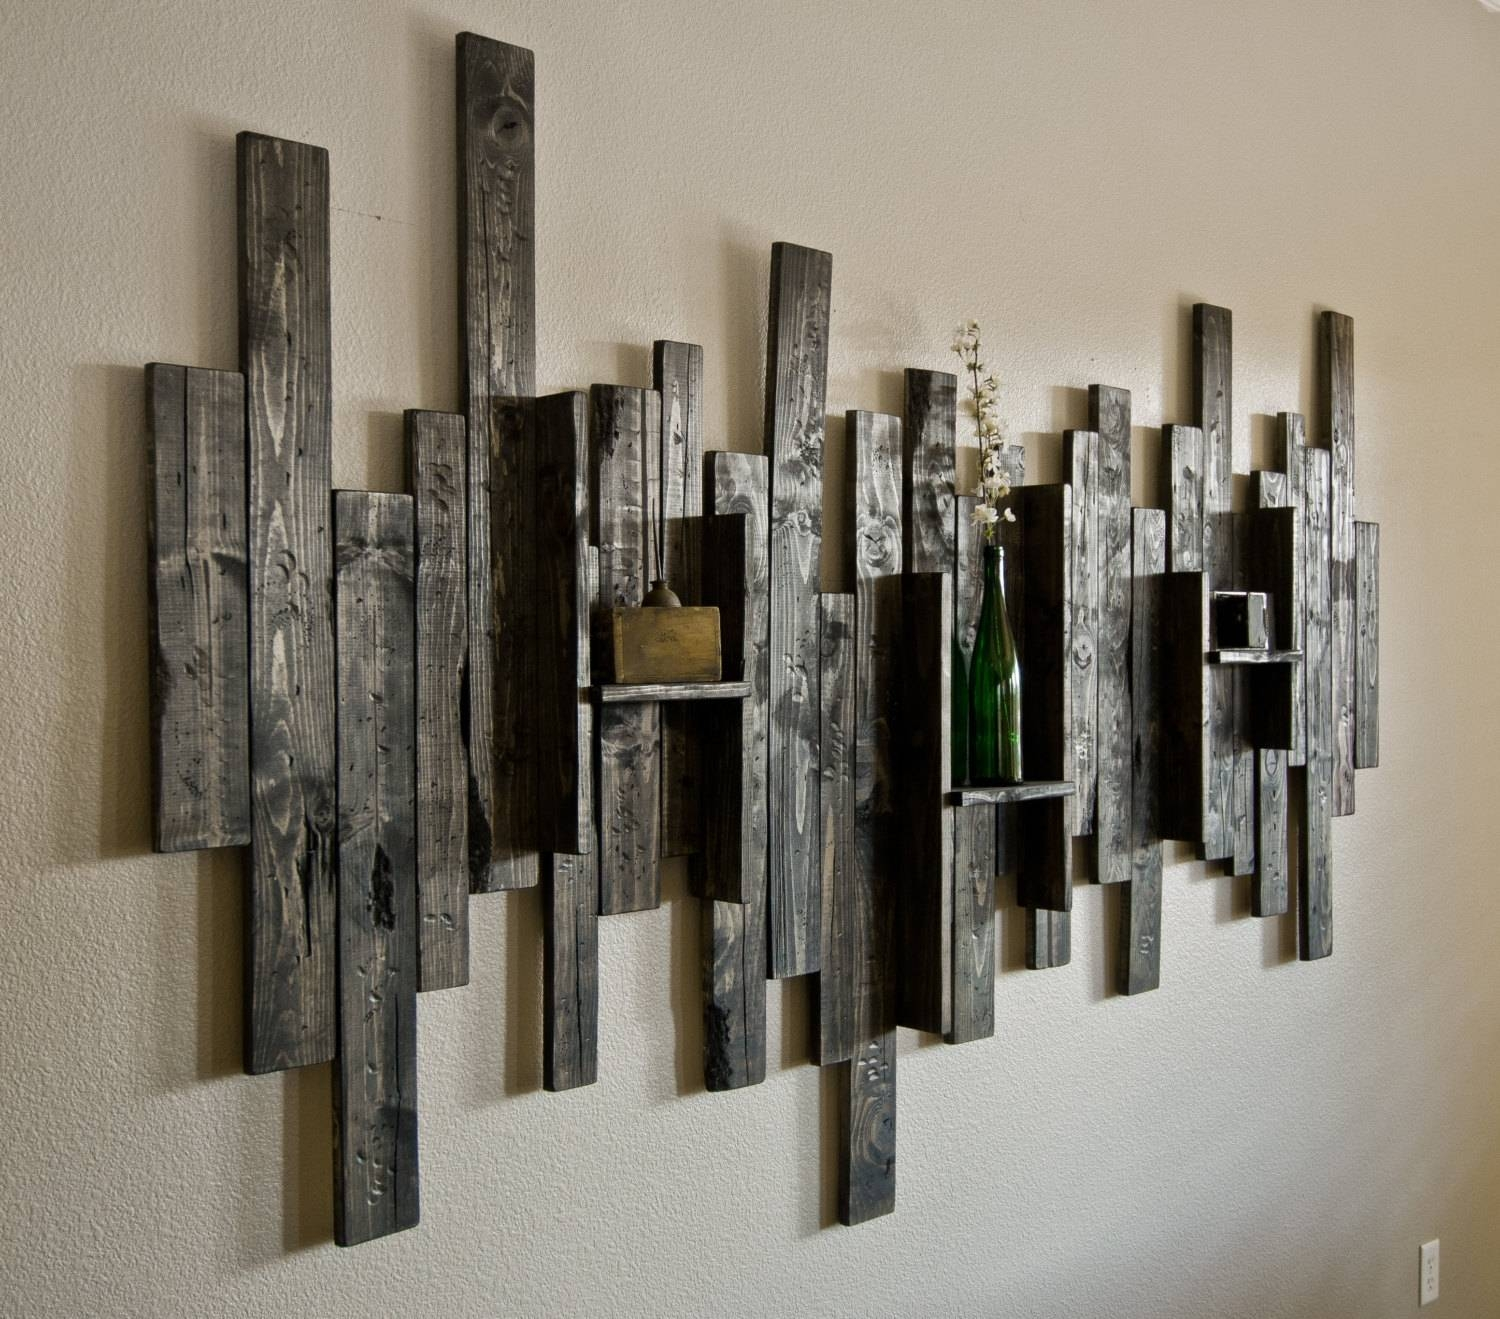 Aweinspiring Rustic Metal Wall Art Large Metal Wall Art Panels Large Metal Wall Art Uk Large Wall Art All Rustic Wall Model Storage A Large Pertainingto 2018 Rustic Metal Explore Photos houzz-03 Large Metal Wall Art